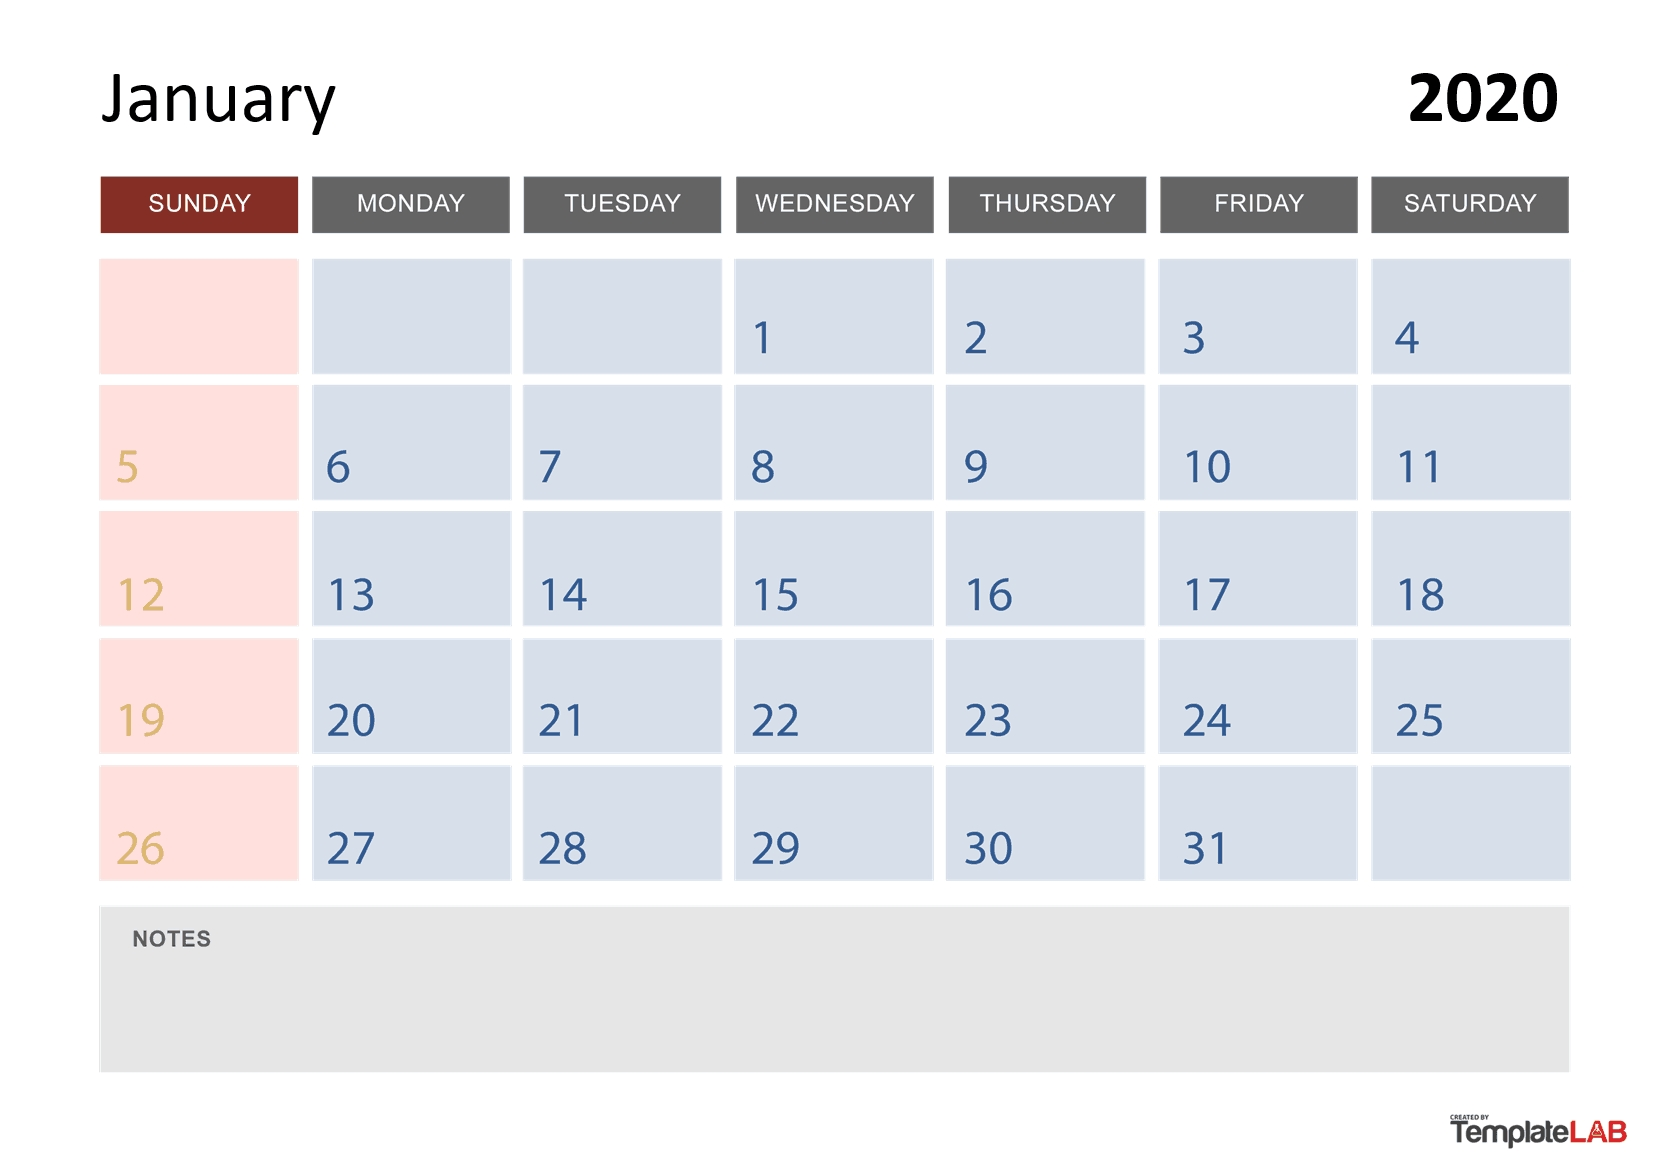 2020 Printable Calendars [Monthly, With Holidays, Yearly] ᐅ regarding Free Printable 2020 Calendar To I Can Edit